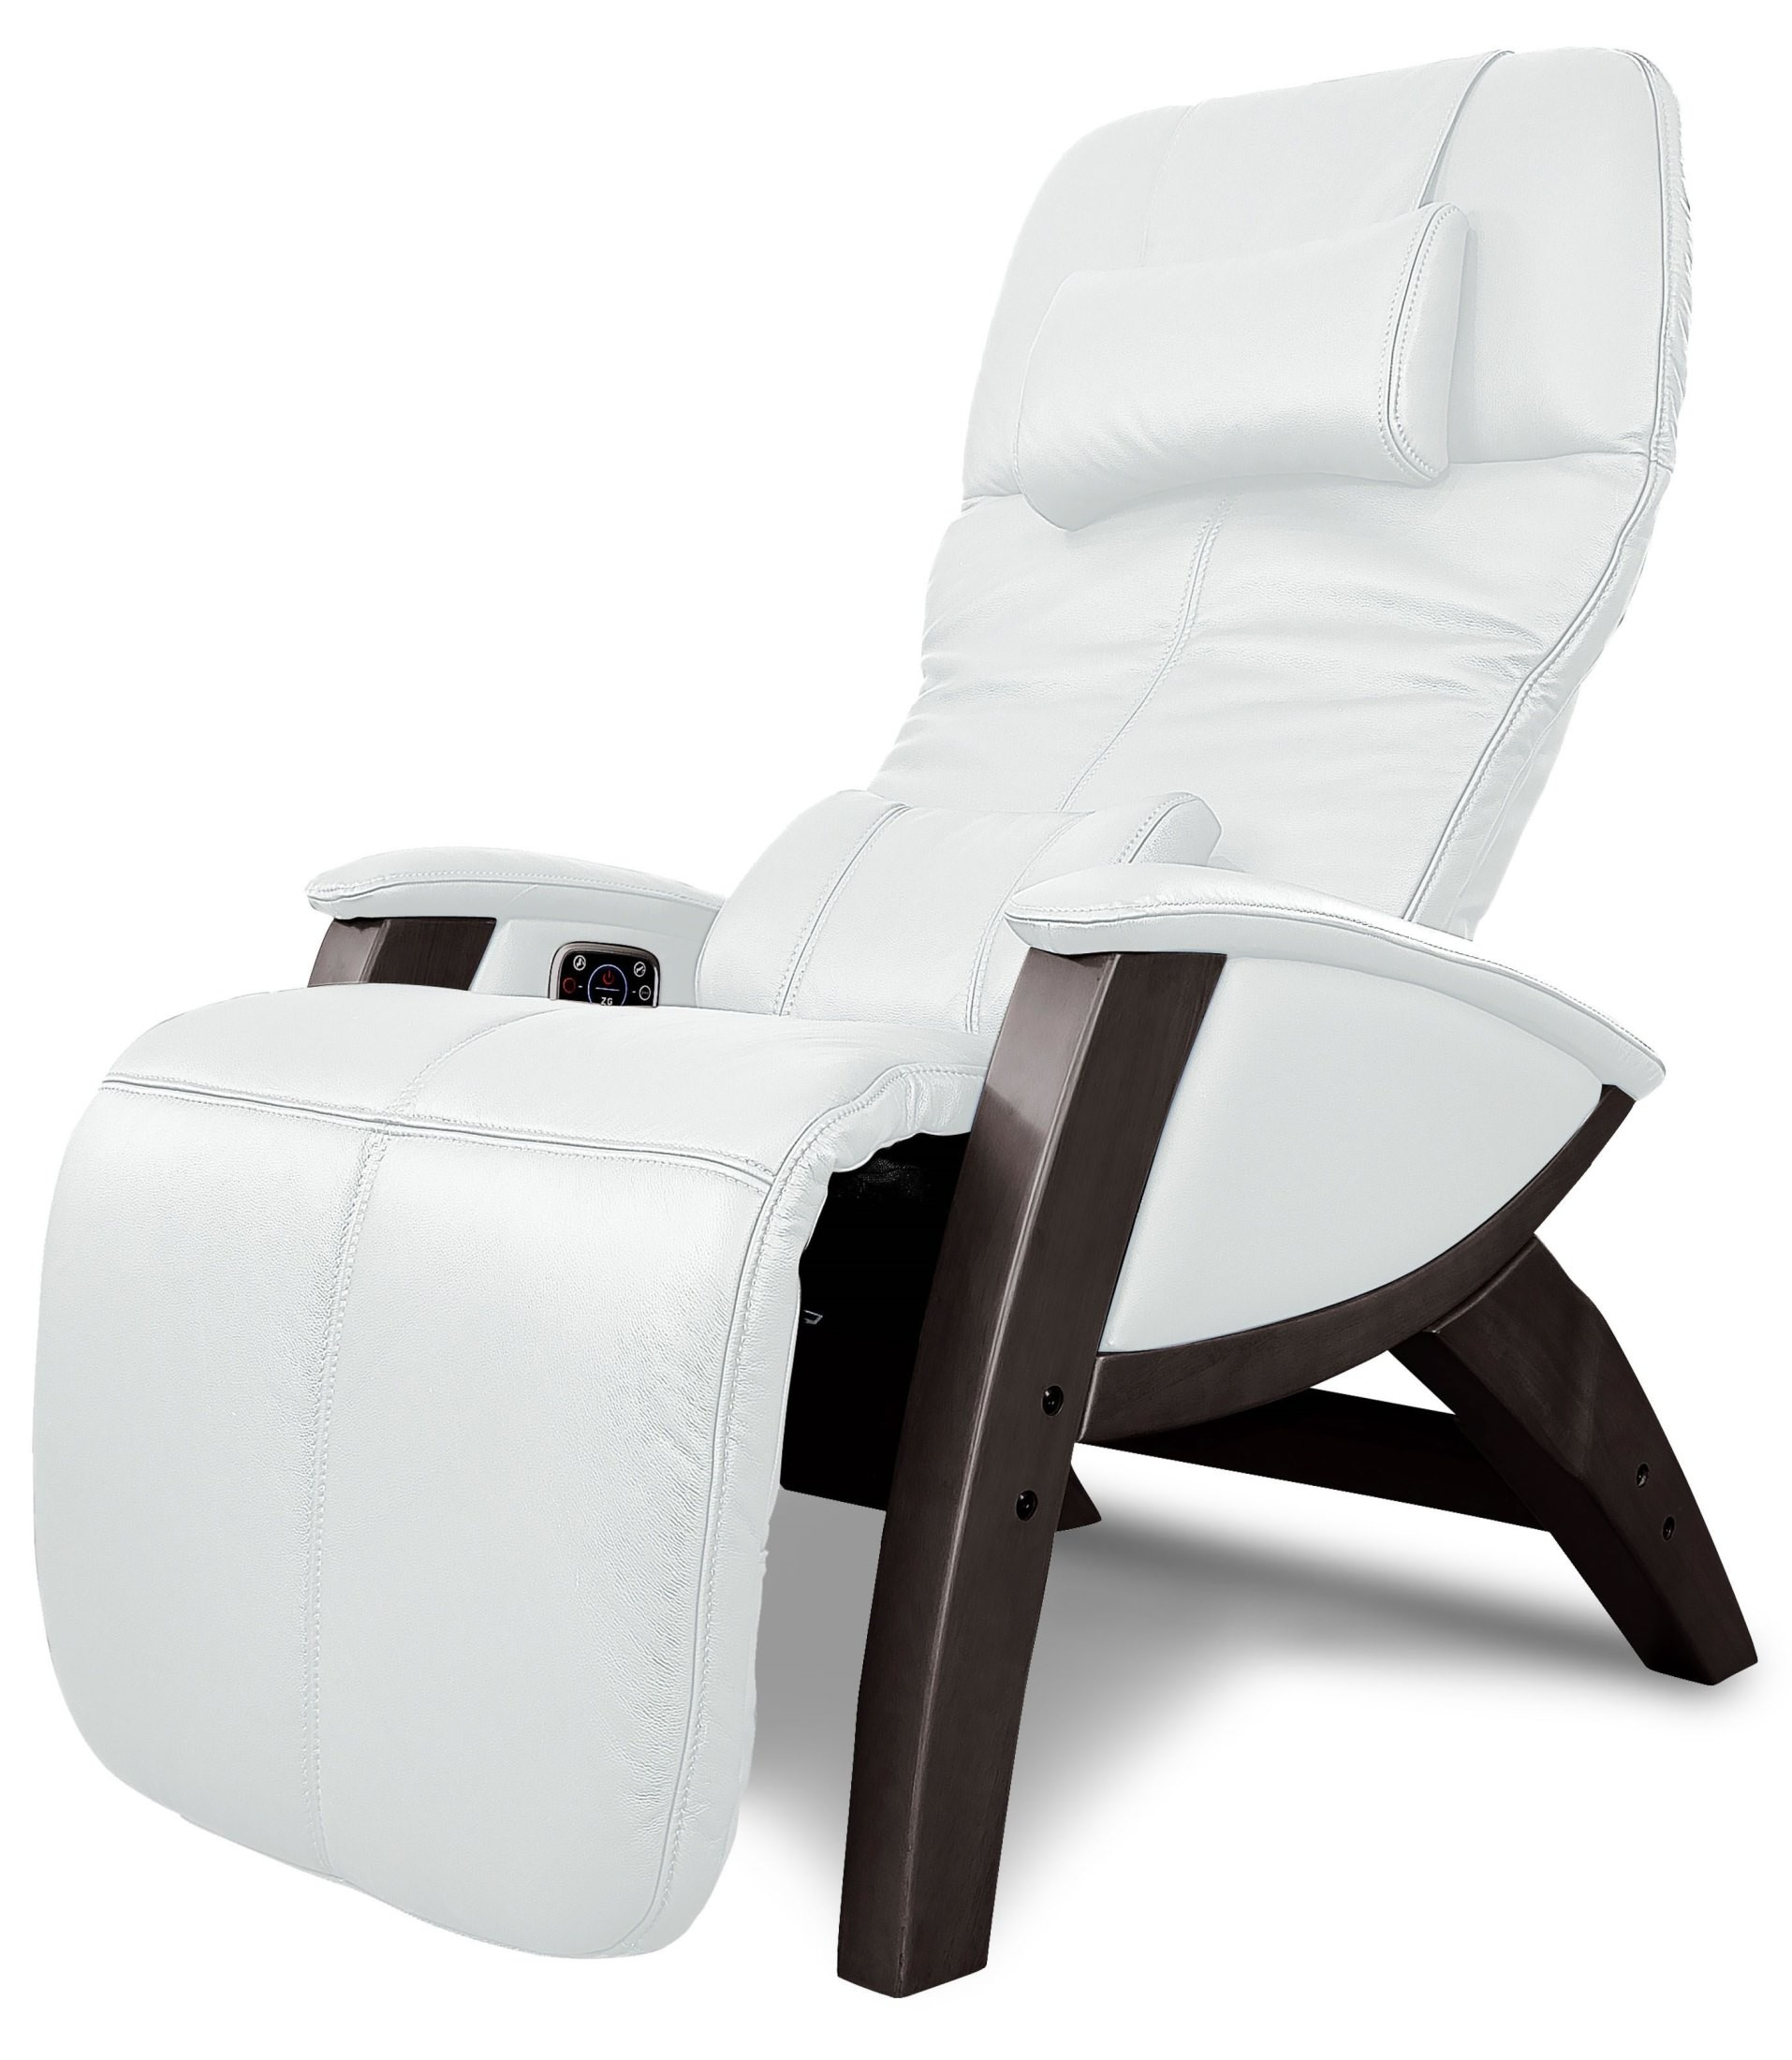 ivory leather office chair sling patio furniture svago benessere with walnut wood legs